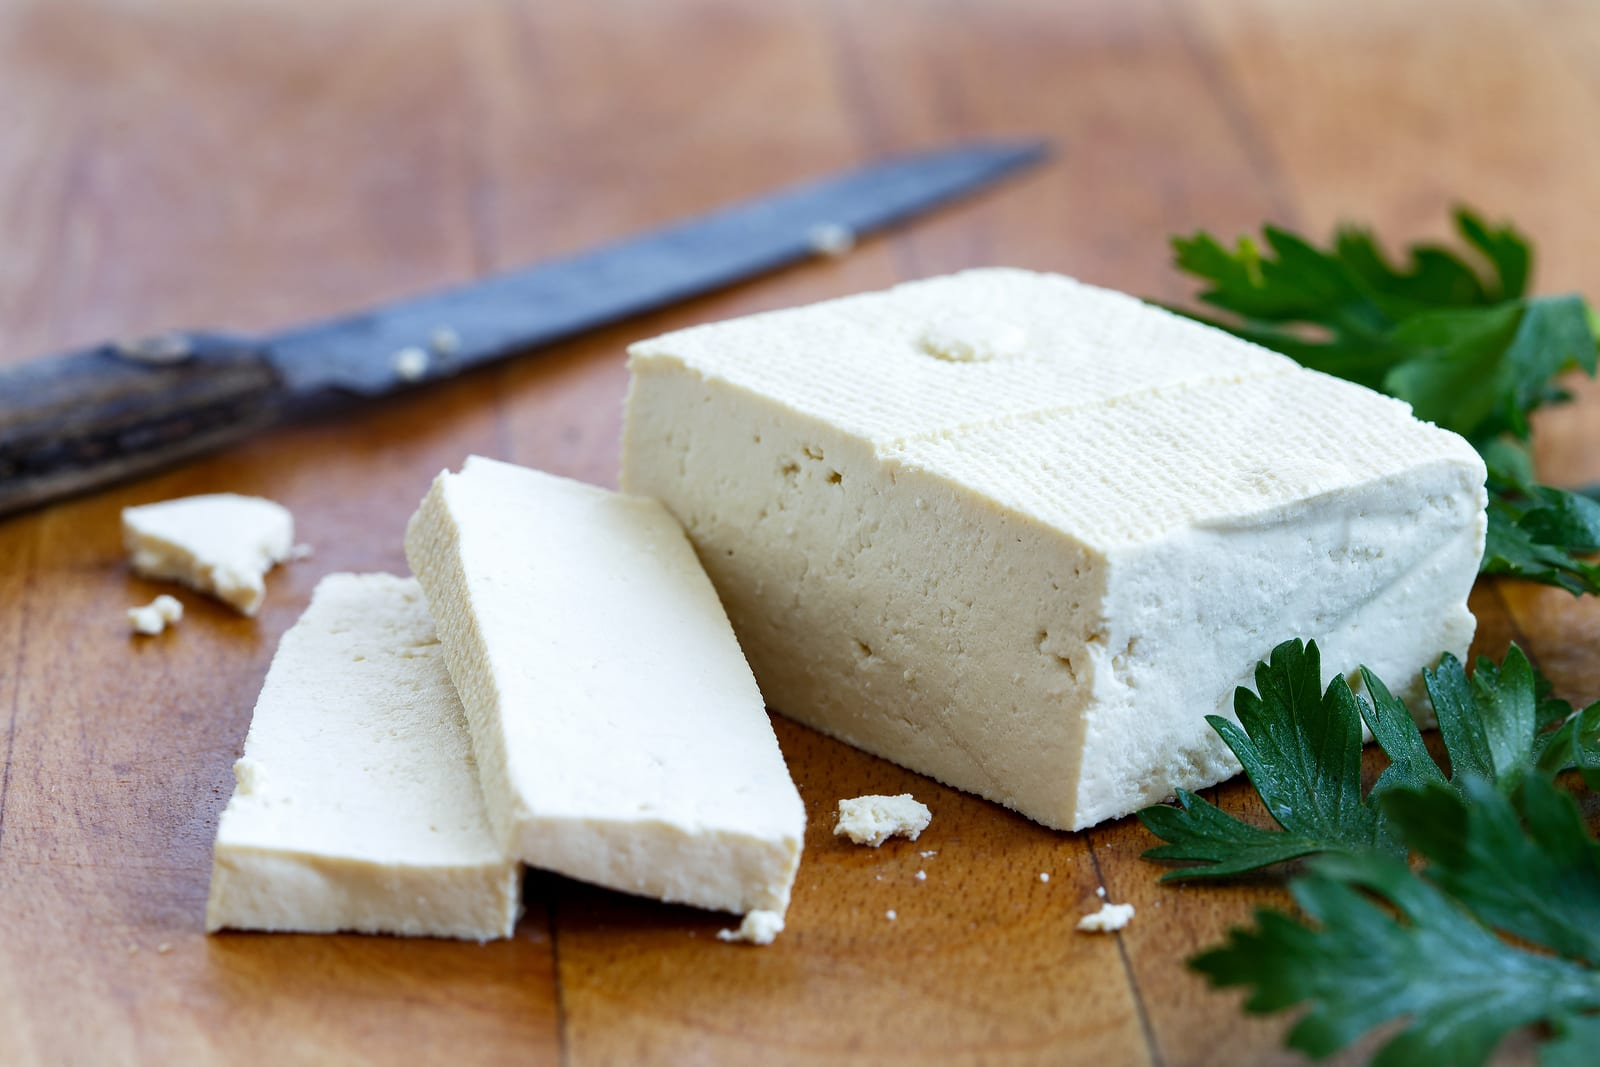 Single block of white tofu with two tofu slices crumbs fresh parsley and rustic knife on wooden chopping board.